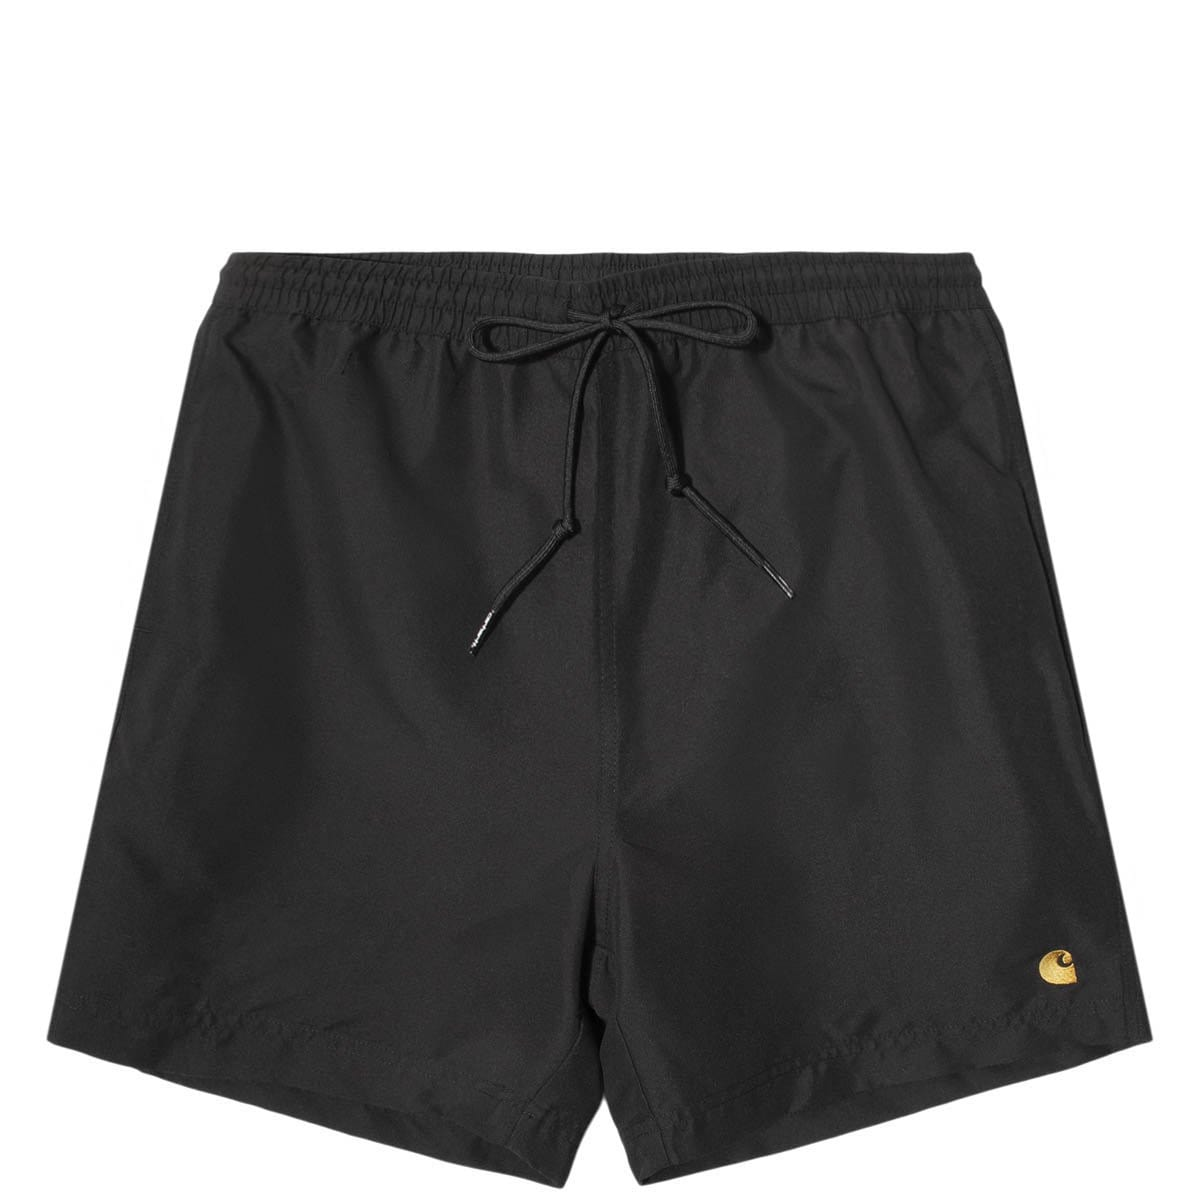 Carhartt W.I.P. Bottoms CHASE SWIM TRUNK